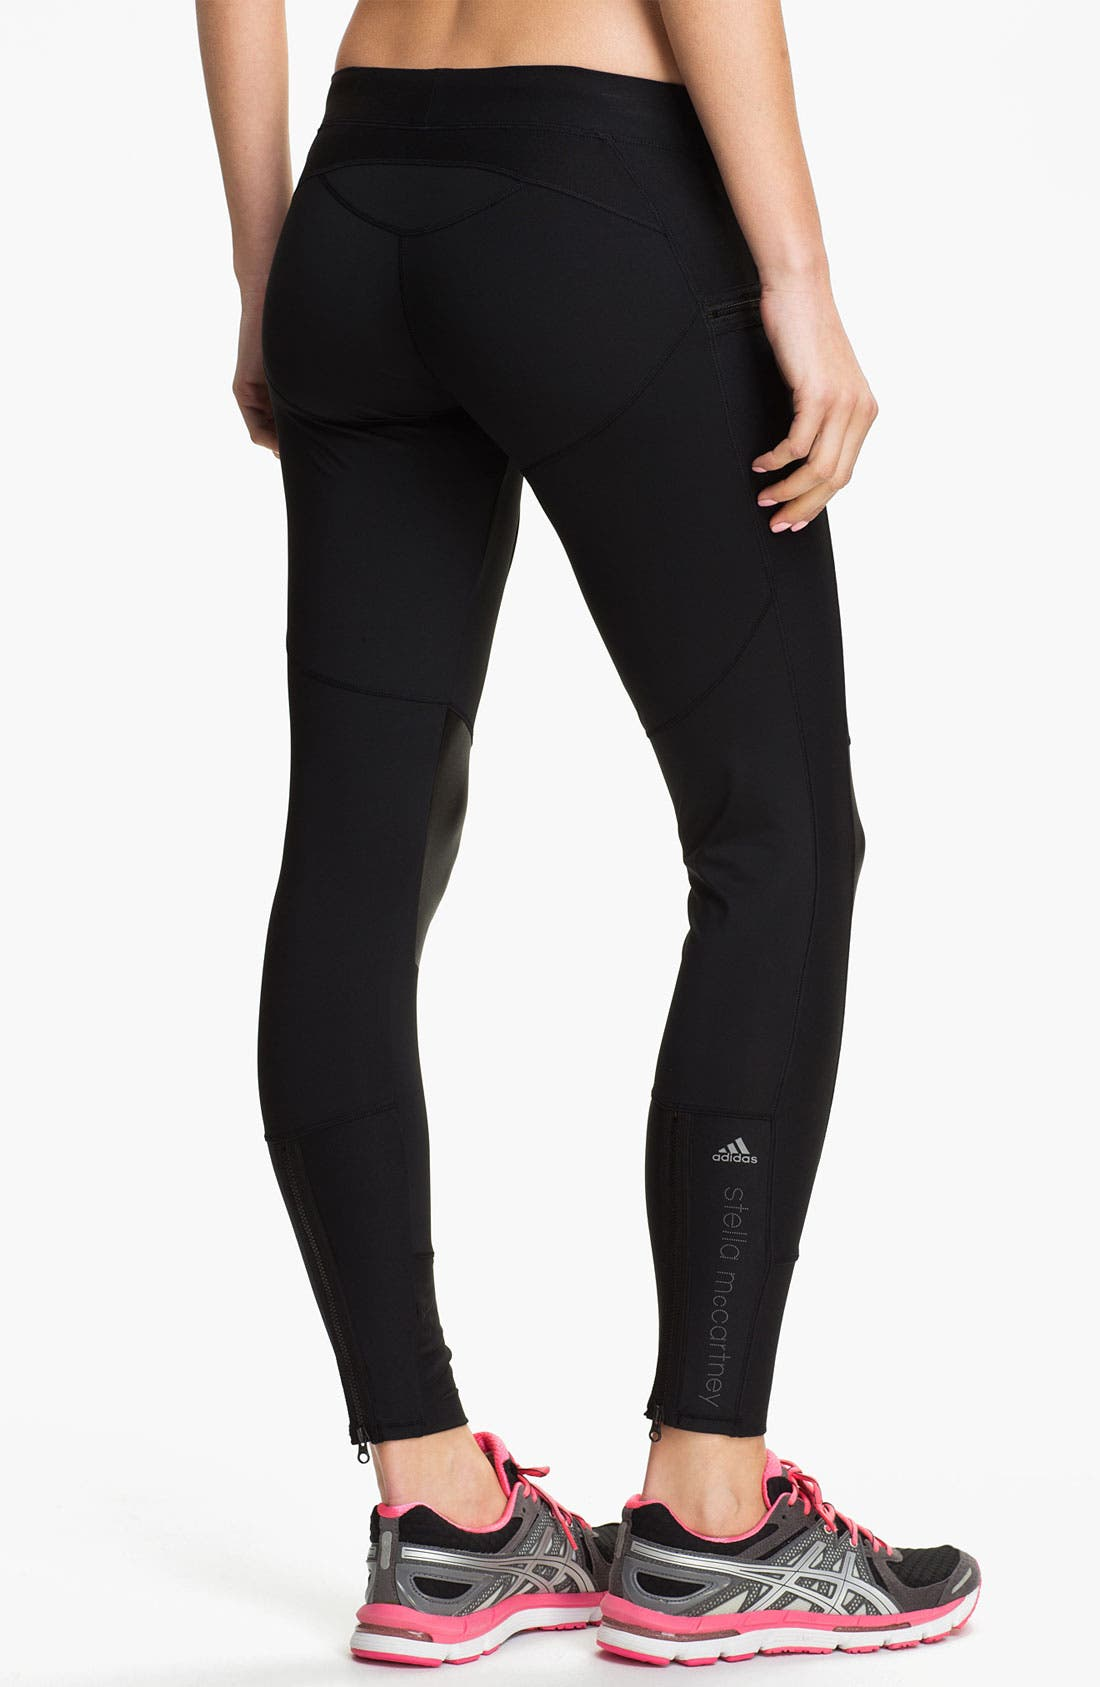 Alternate Image 2  - adidas by Stella McCartney 'Run' 7/8 Tights